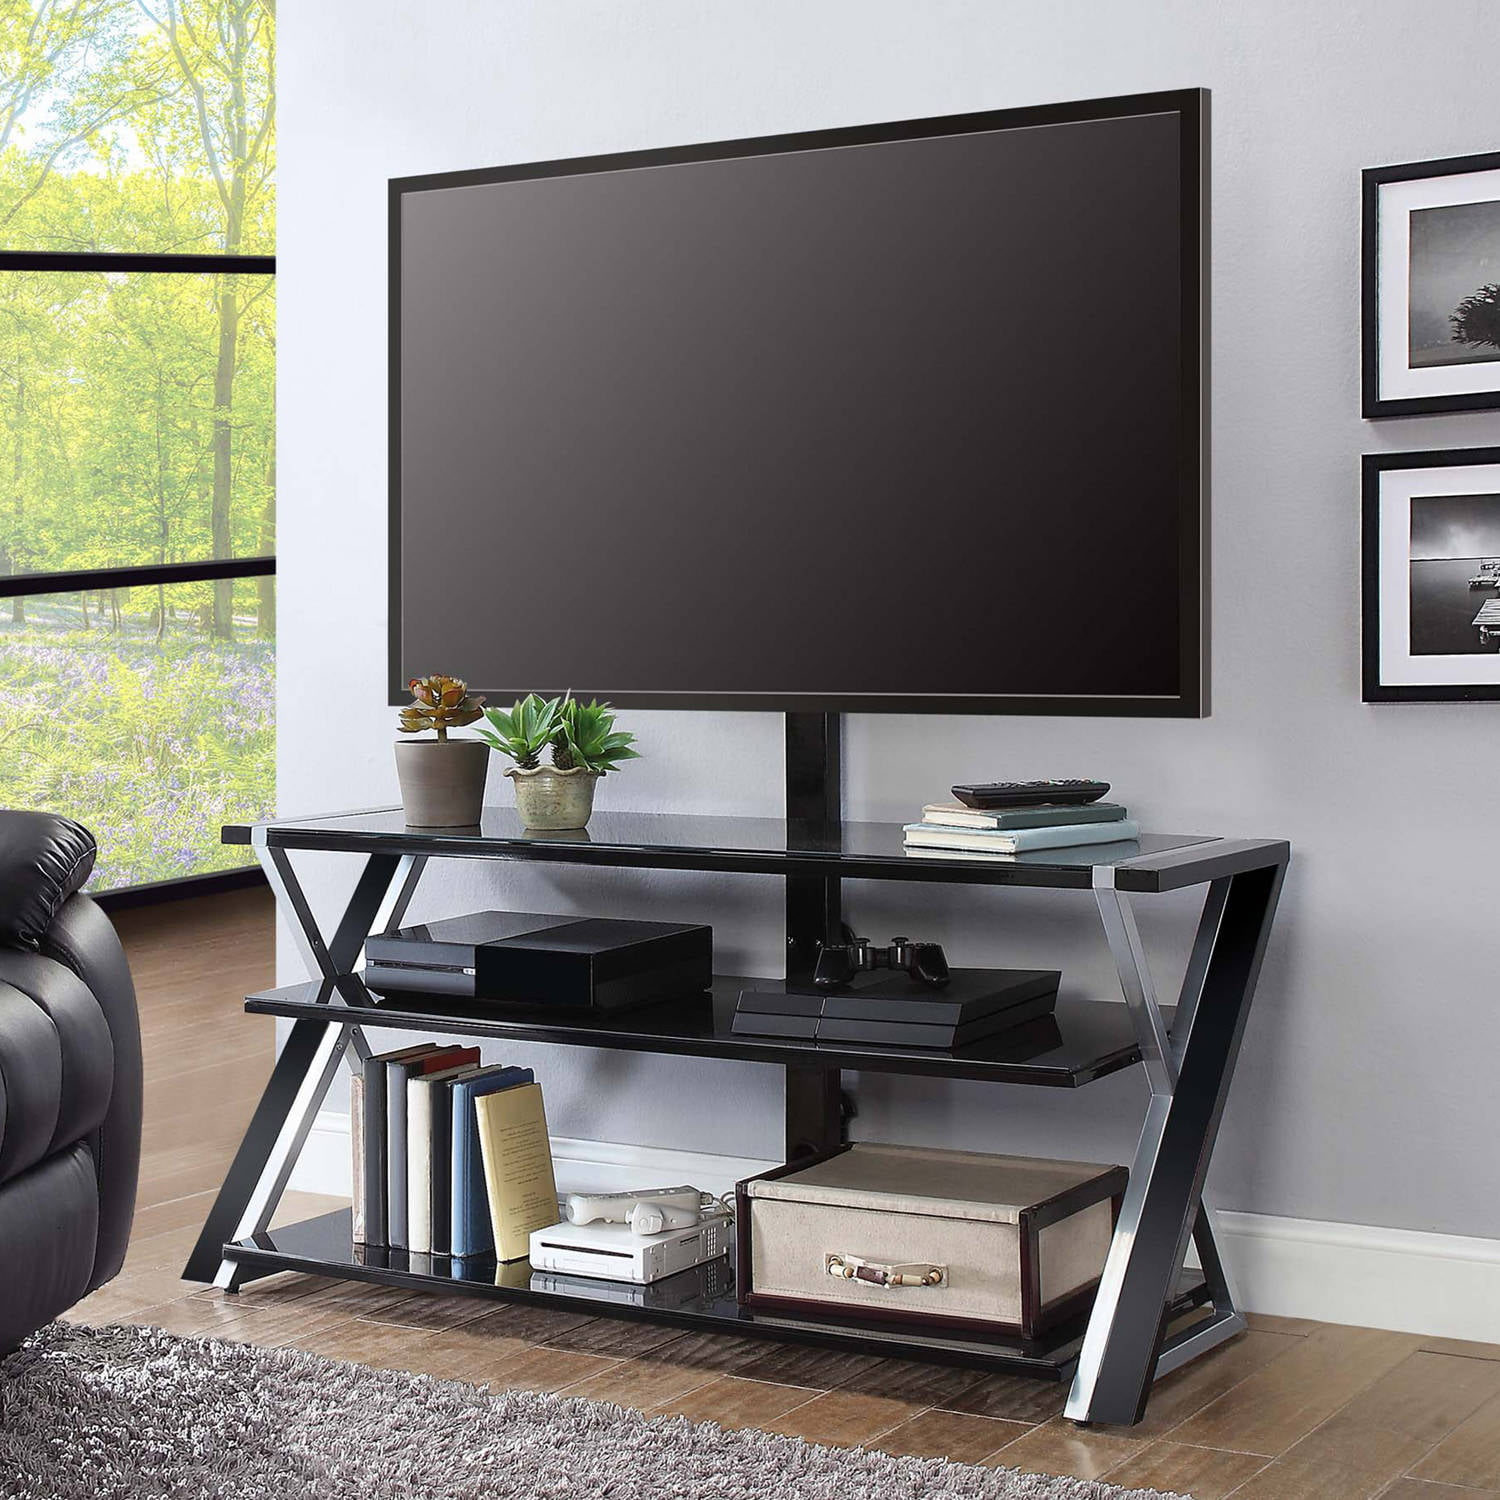 Whalen Xavier 3-in-1 TV Stand for TVs up to 70\ by Whalen Furniture